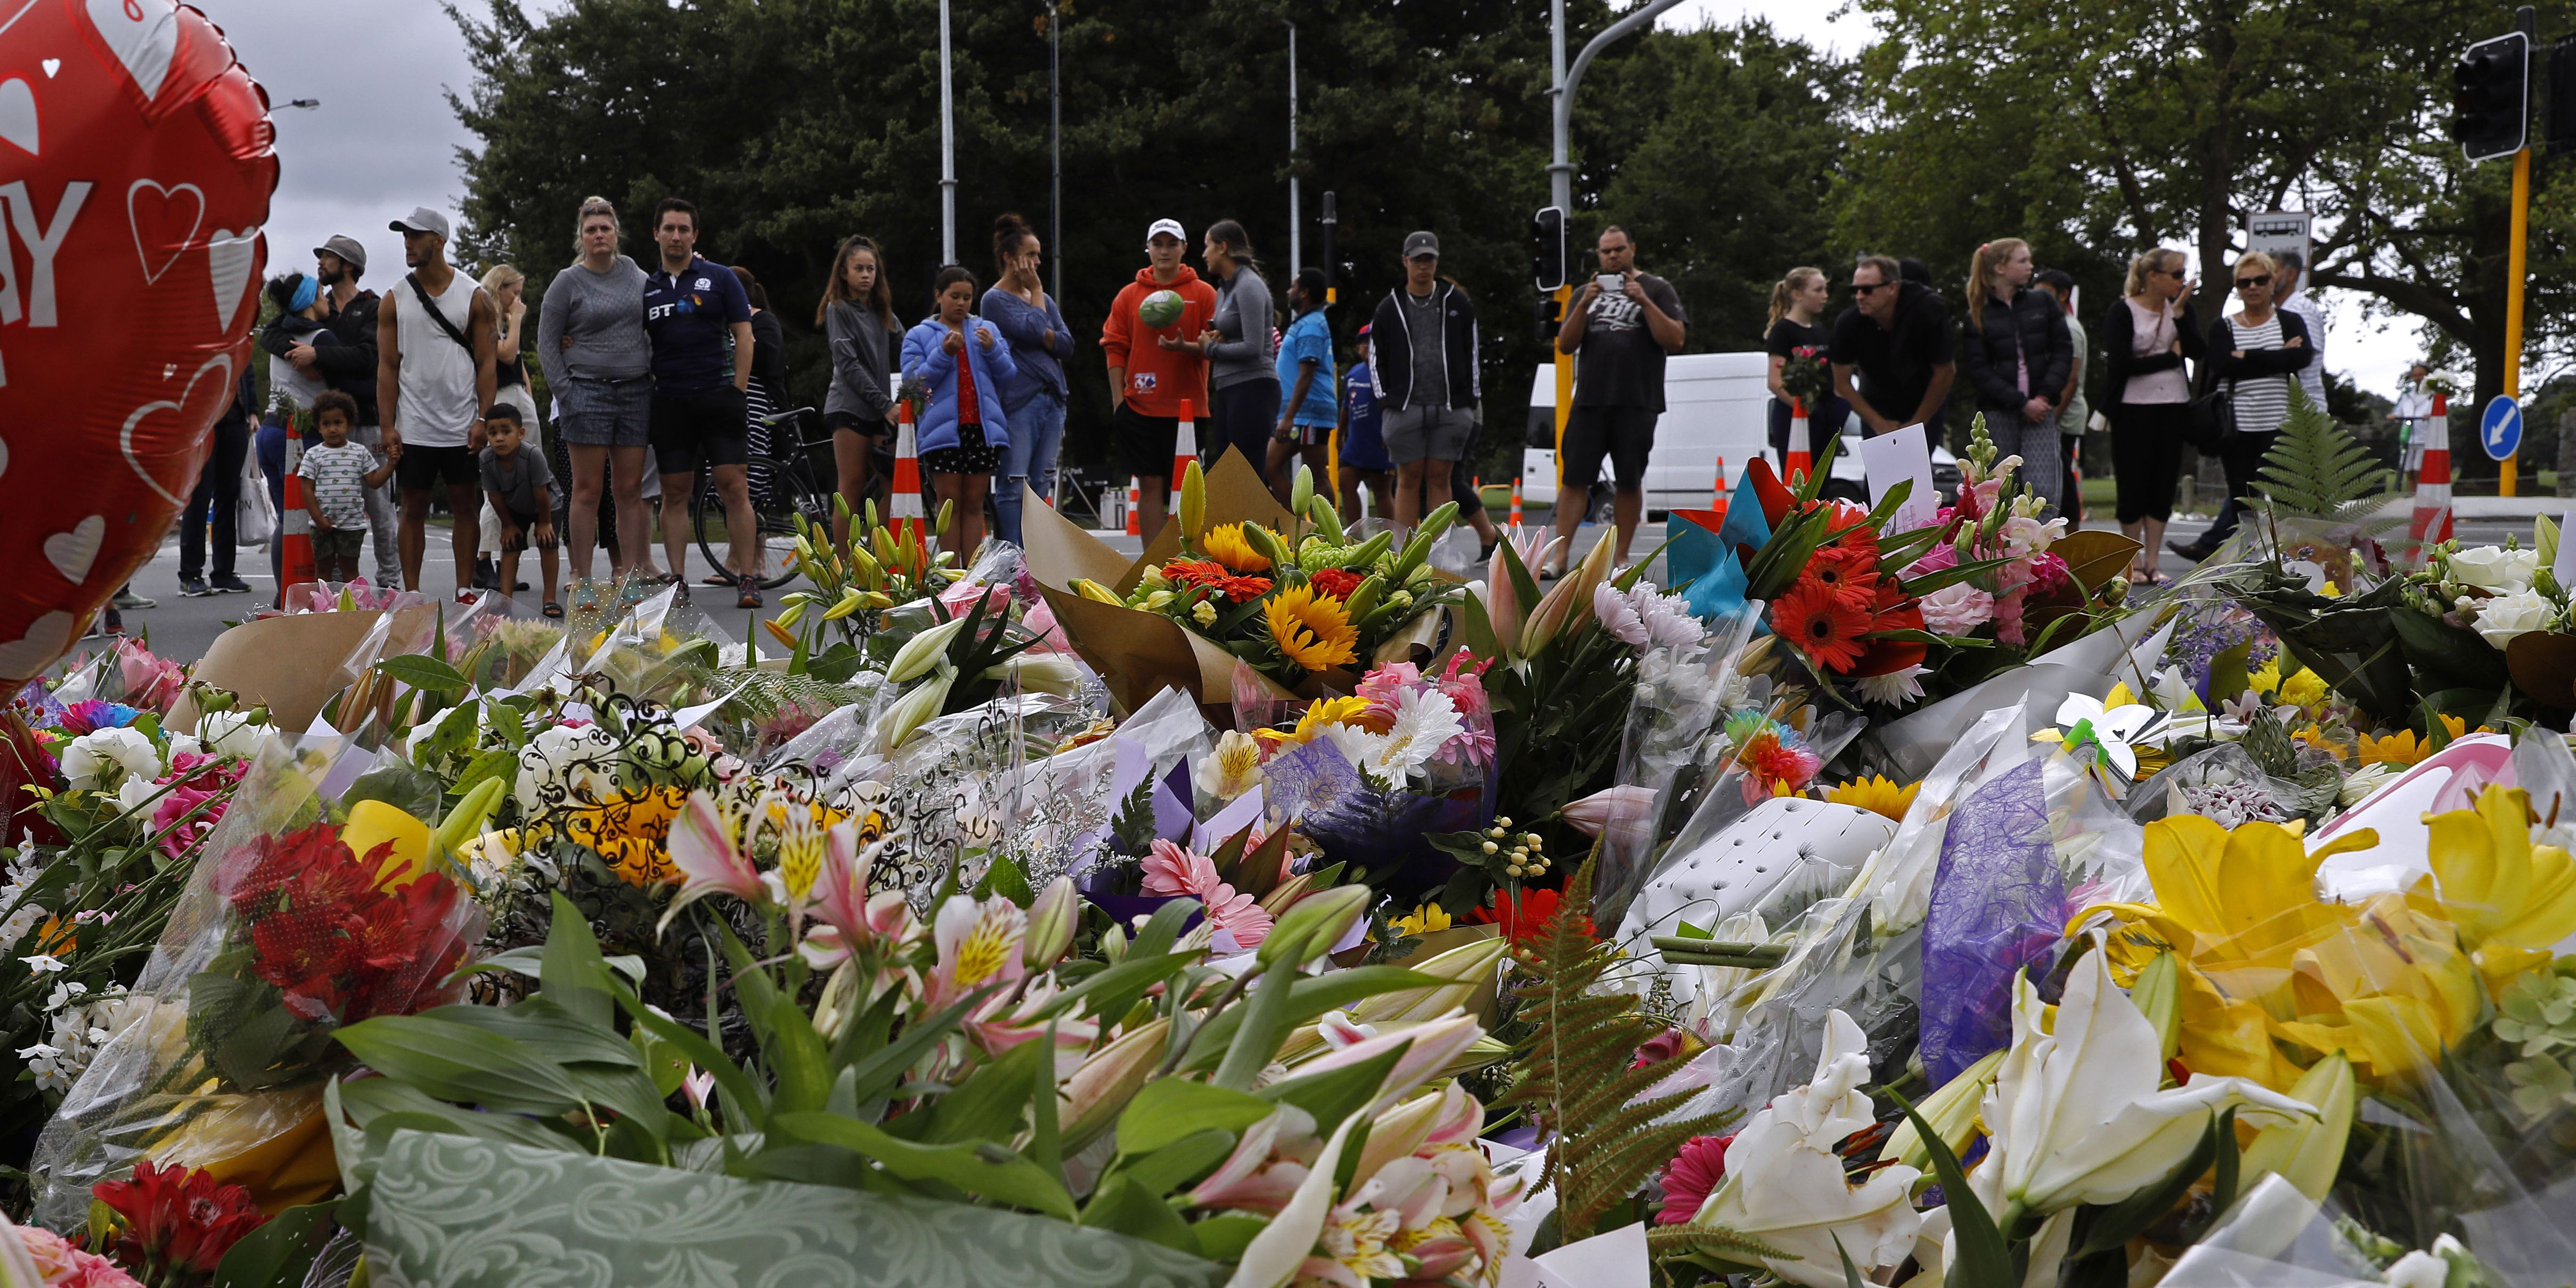 Death toll rises to 50, as stricken New Zealanders reach out to Muslims after shooting